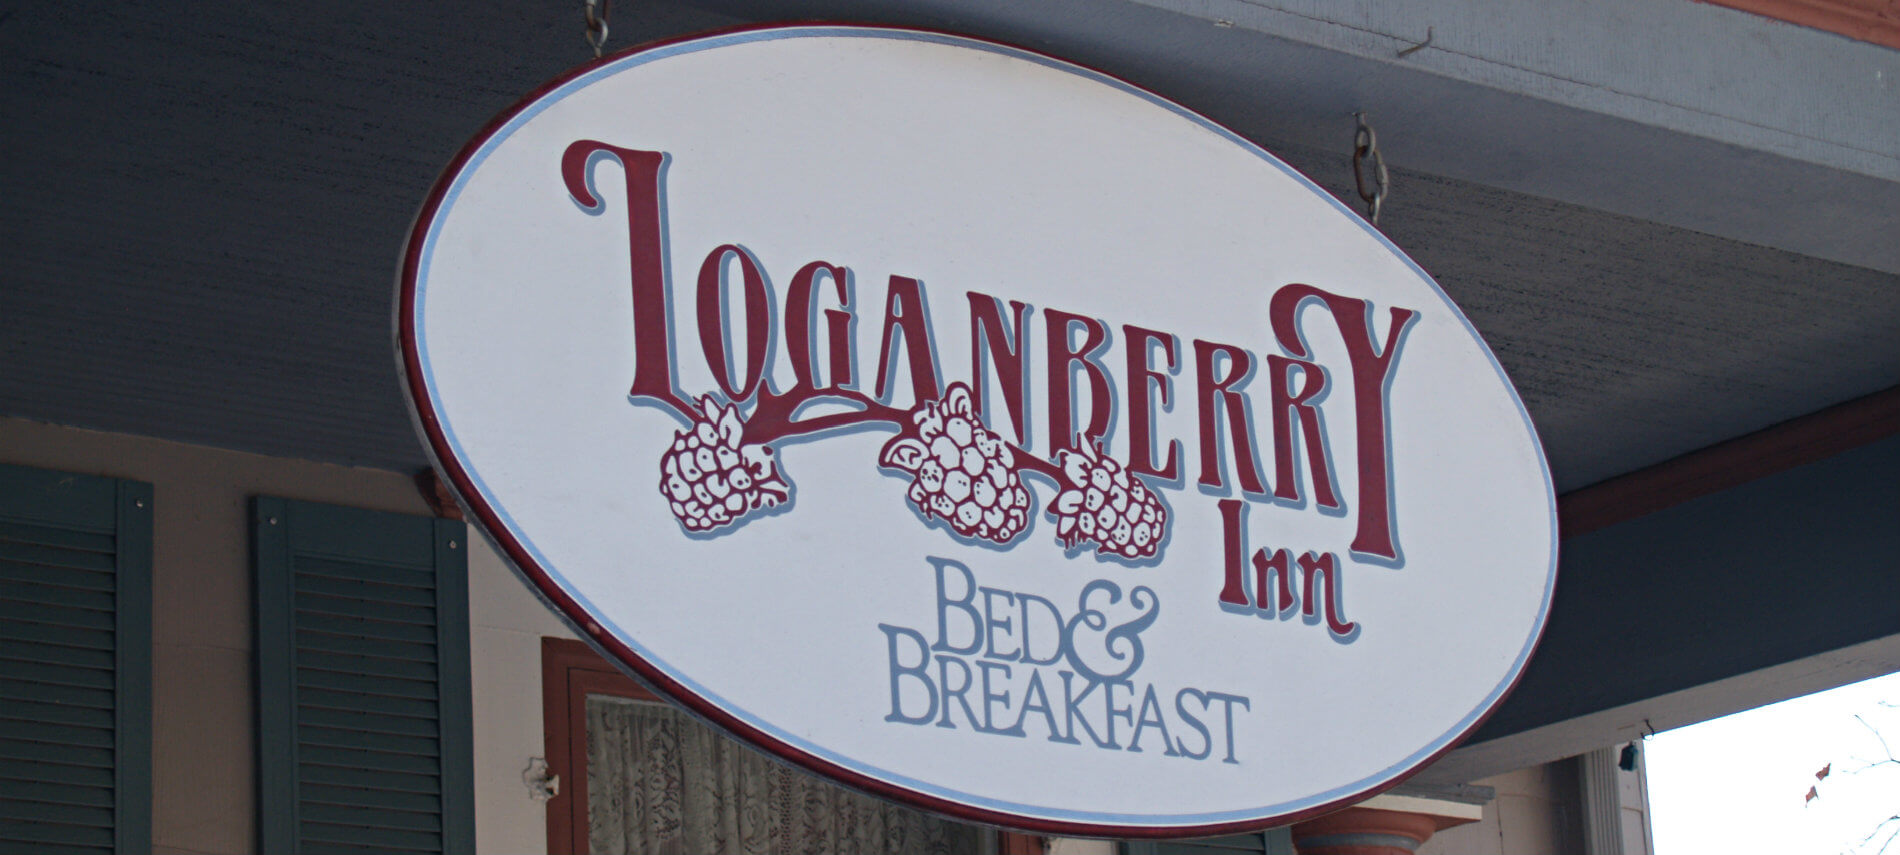 Close-up view of a white oval sign hanging from the front porch that says Loganberry Inn Bed & Breakfast in red and blue